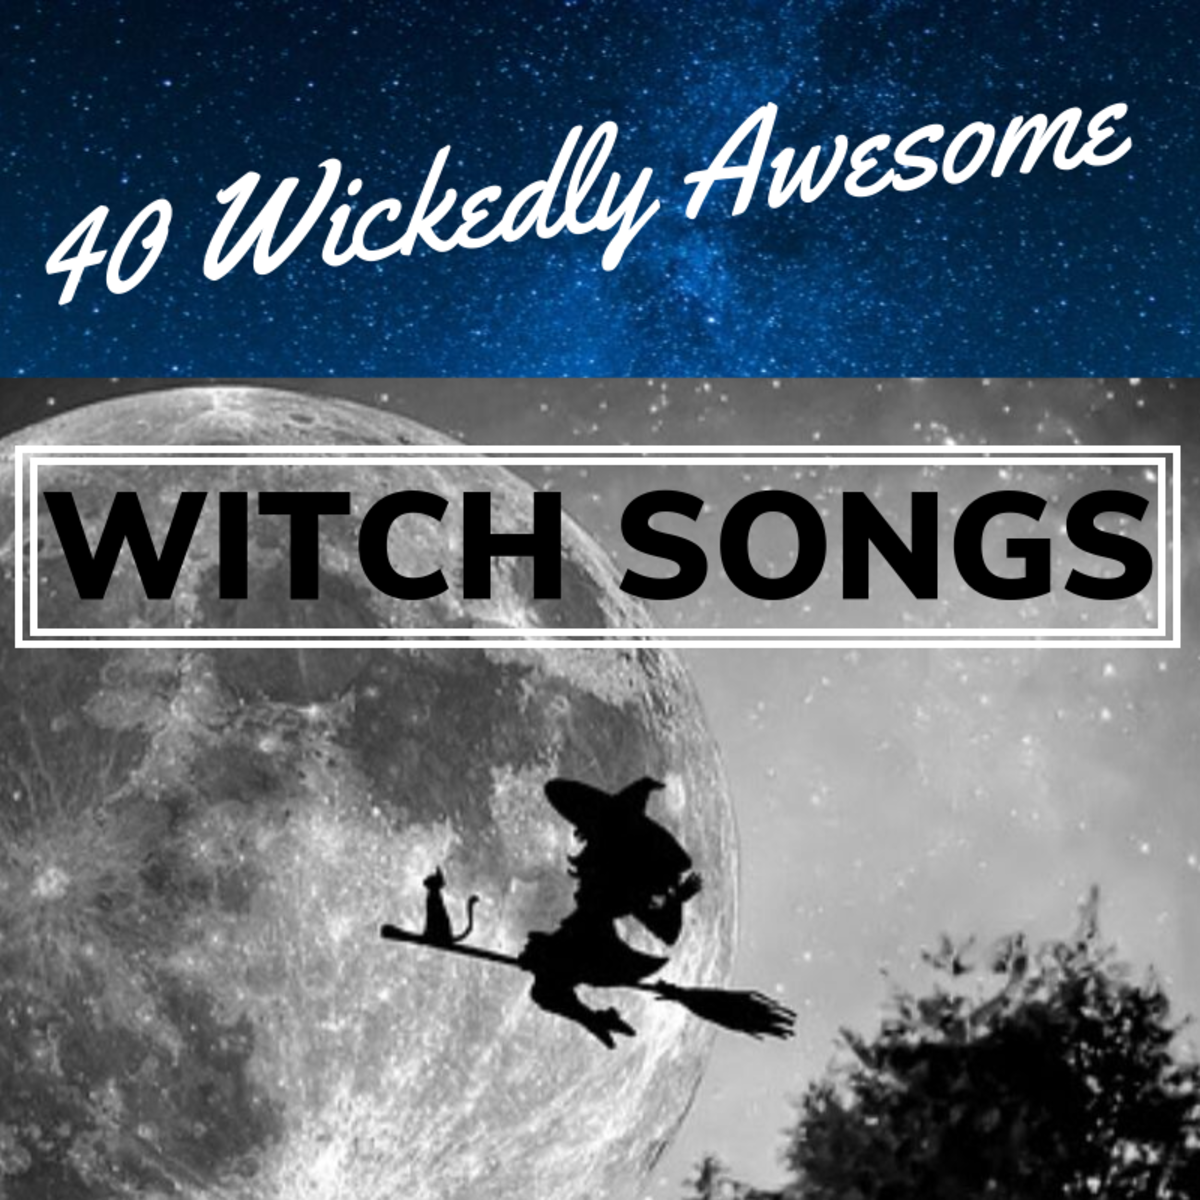 40 Wickedly Awesome Witch Songs for Fans of Black Magic